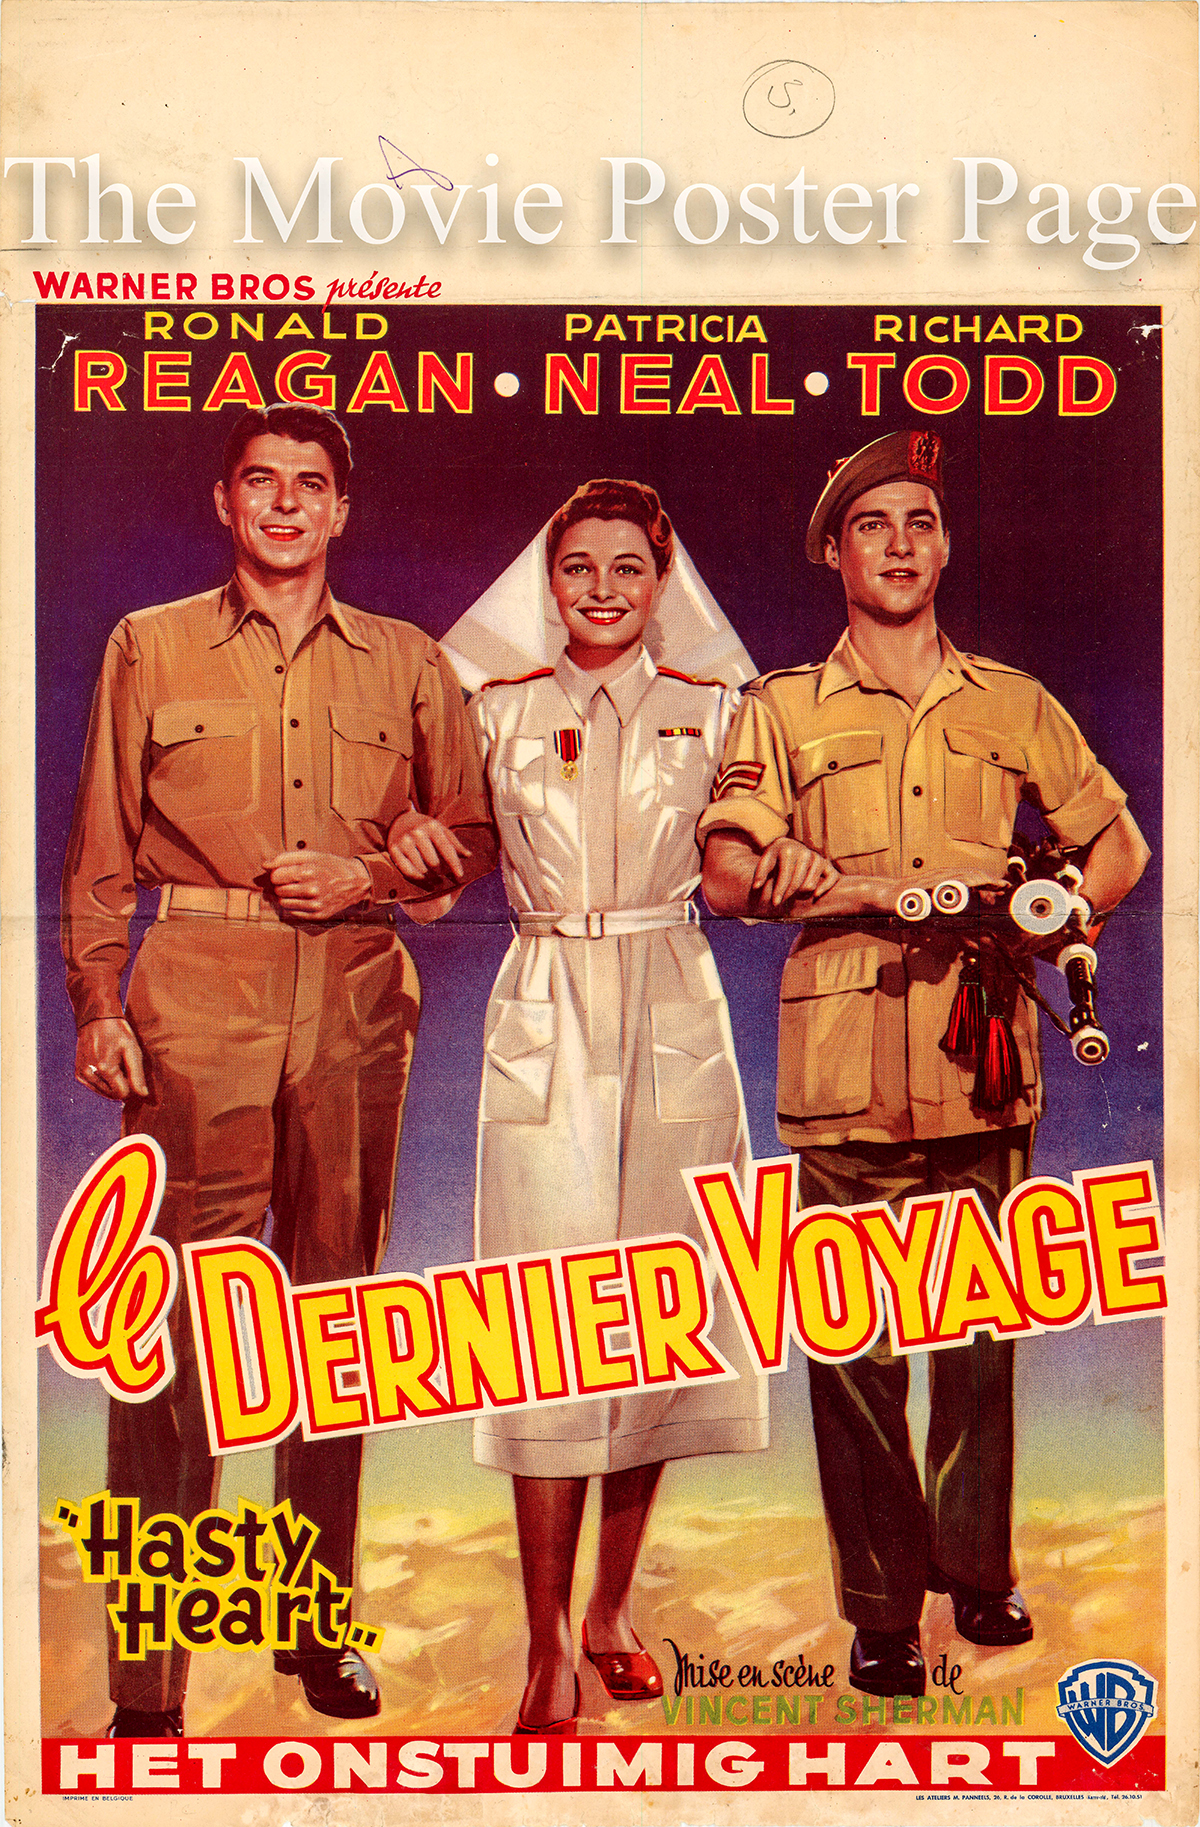 The image shows the Belgian promotional poster for the 1948 Vincent Sherman film The Hasty Heart starring Ronald Reagan, with Patricia Neal in her debut film performance.